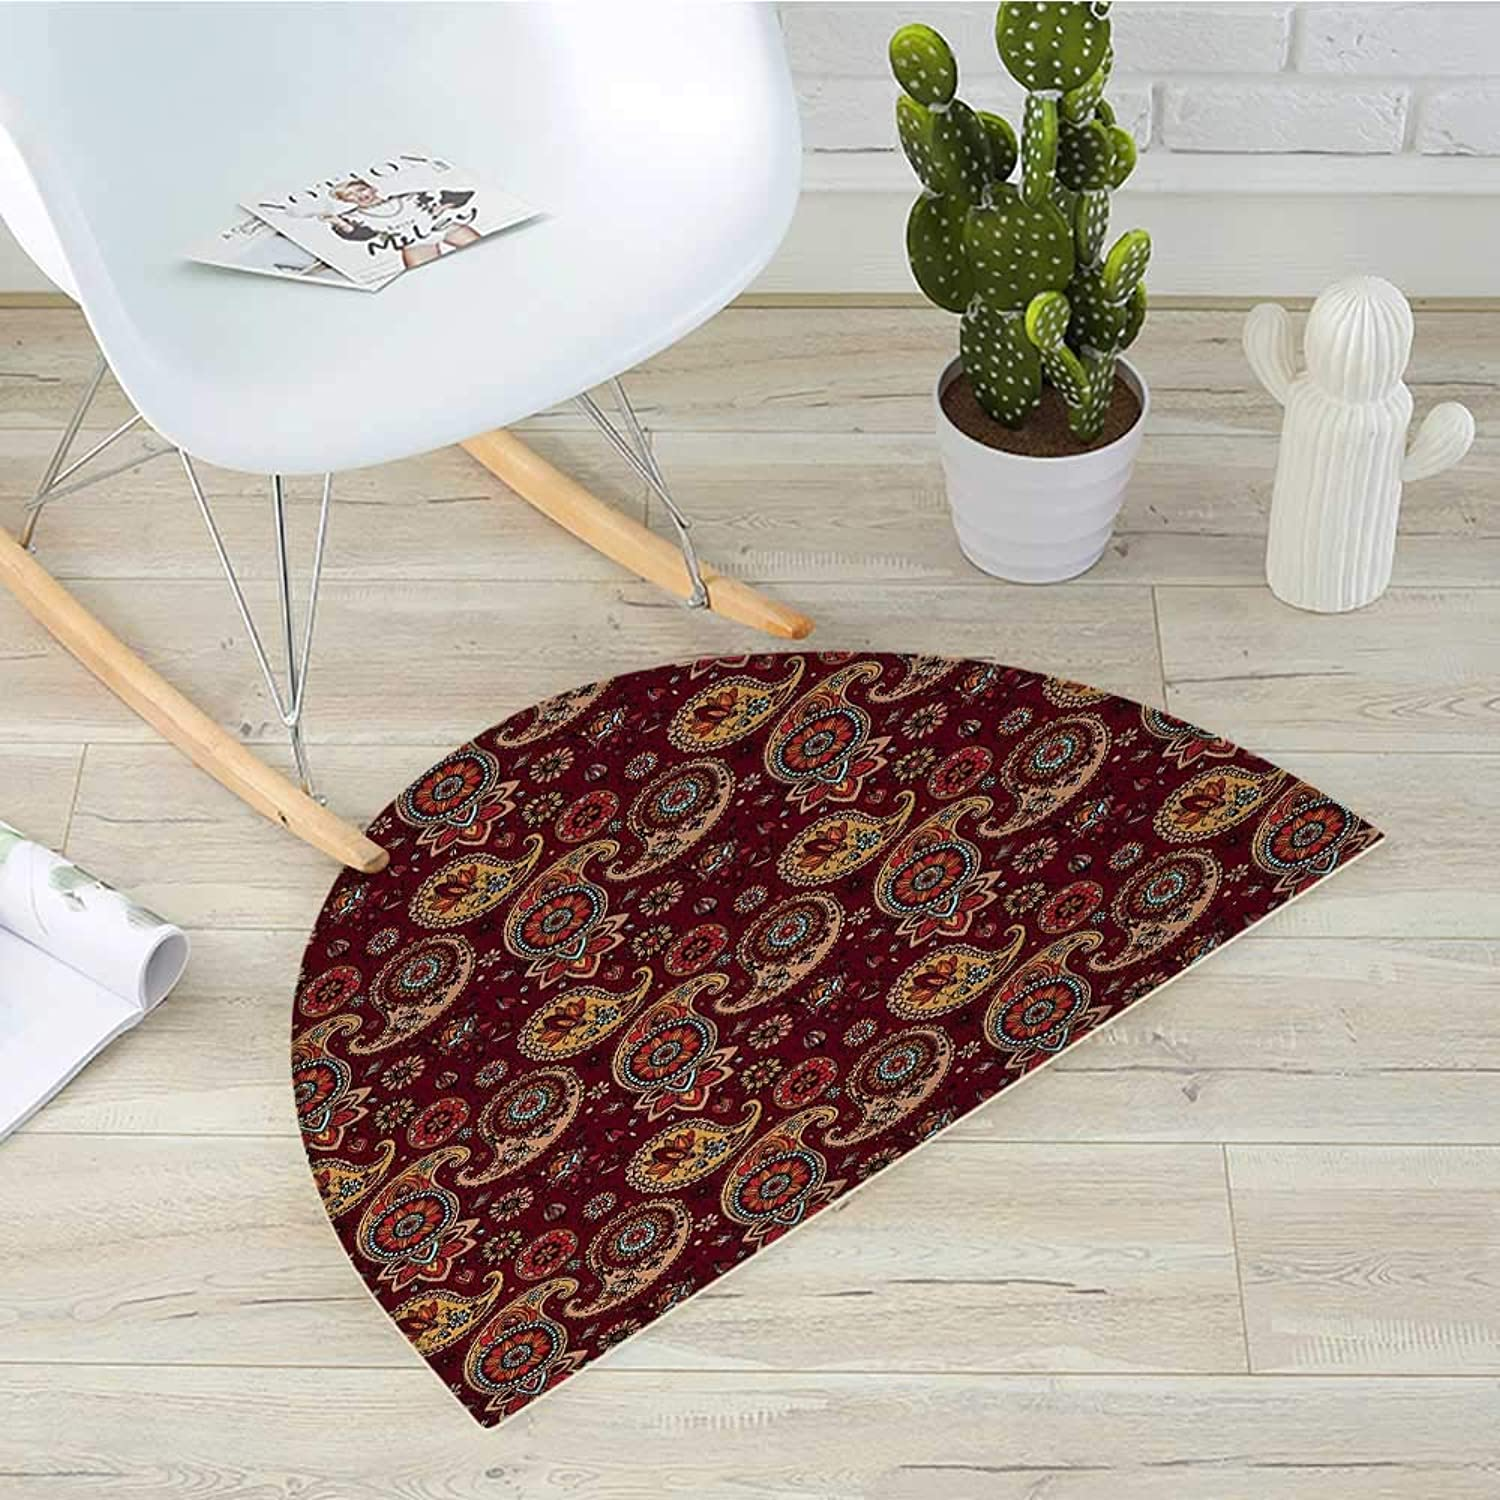 Paisley Half Round Door mats Middle Eastern Culture Stylized Pattern Tribual Artwork Bohemian Bathroom Mat H 39.3  xD 59  Chestnut Brown Mustard Teal